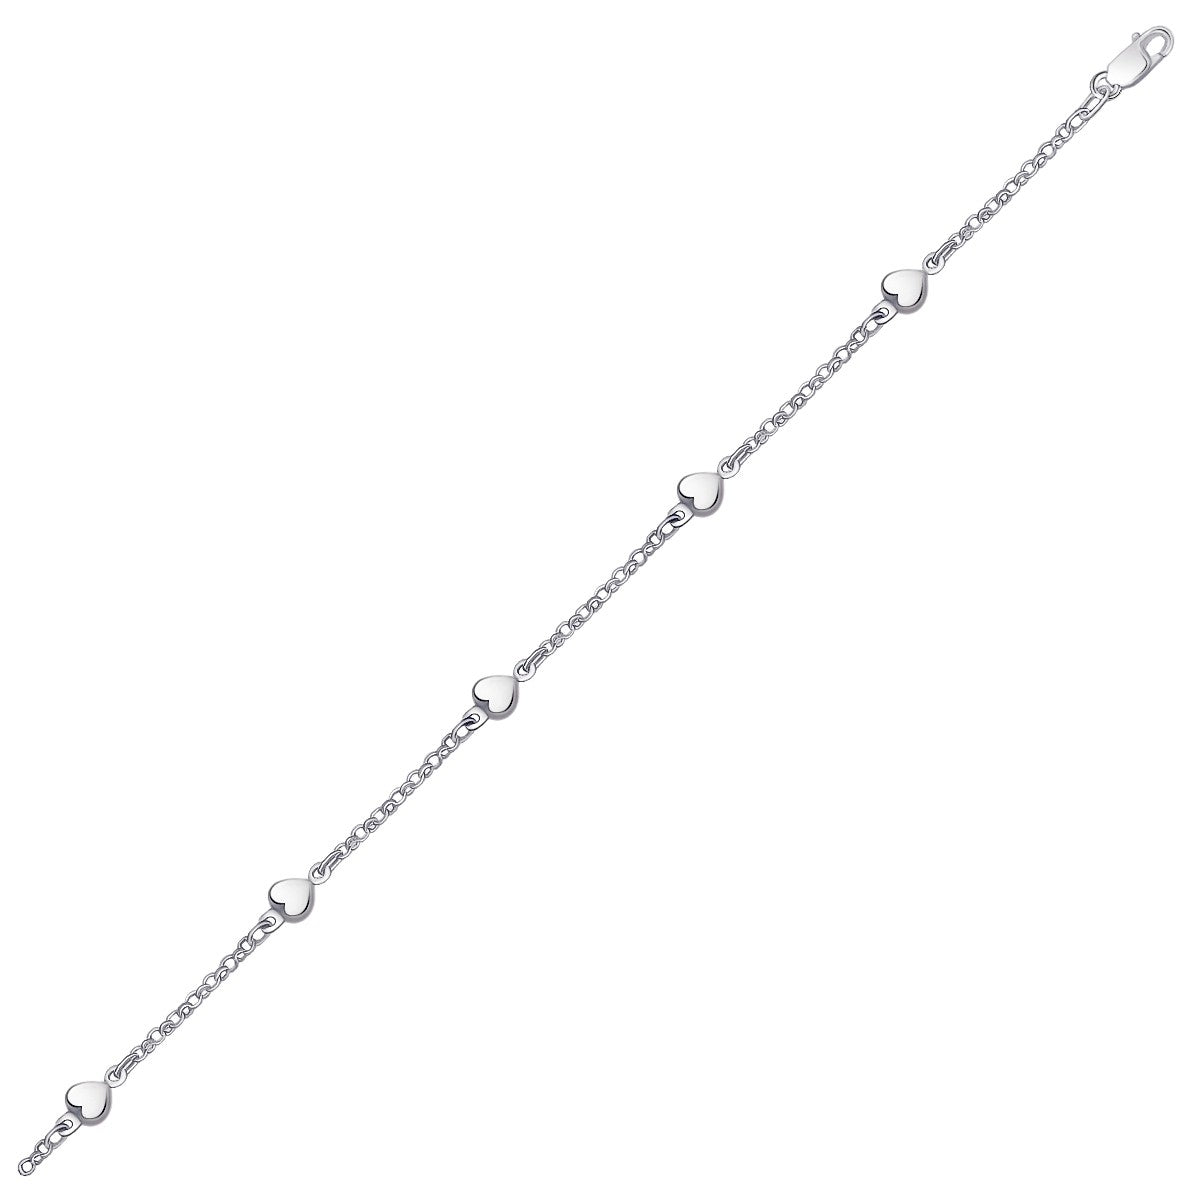 14K White Gold Anklet with Puffed Heart Design - Uniquepedia.com